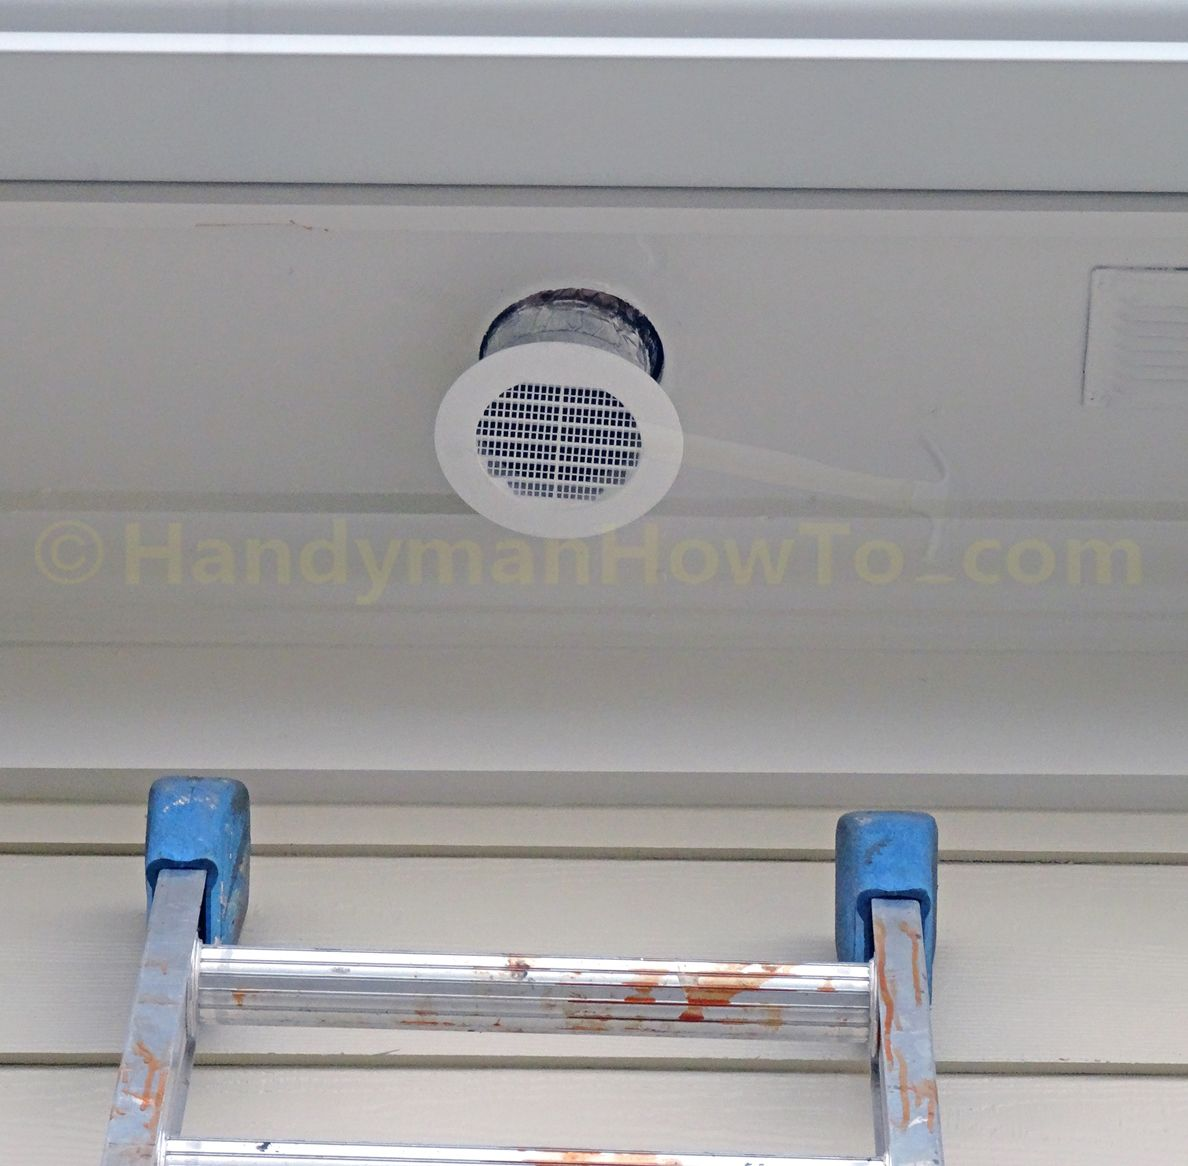 How to install a soffit vent and ductwork for a bathroom for 2 bathroom exhaust fan venting